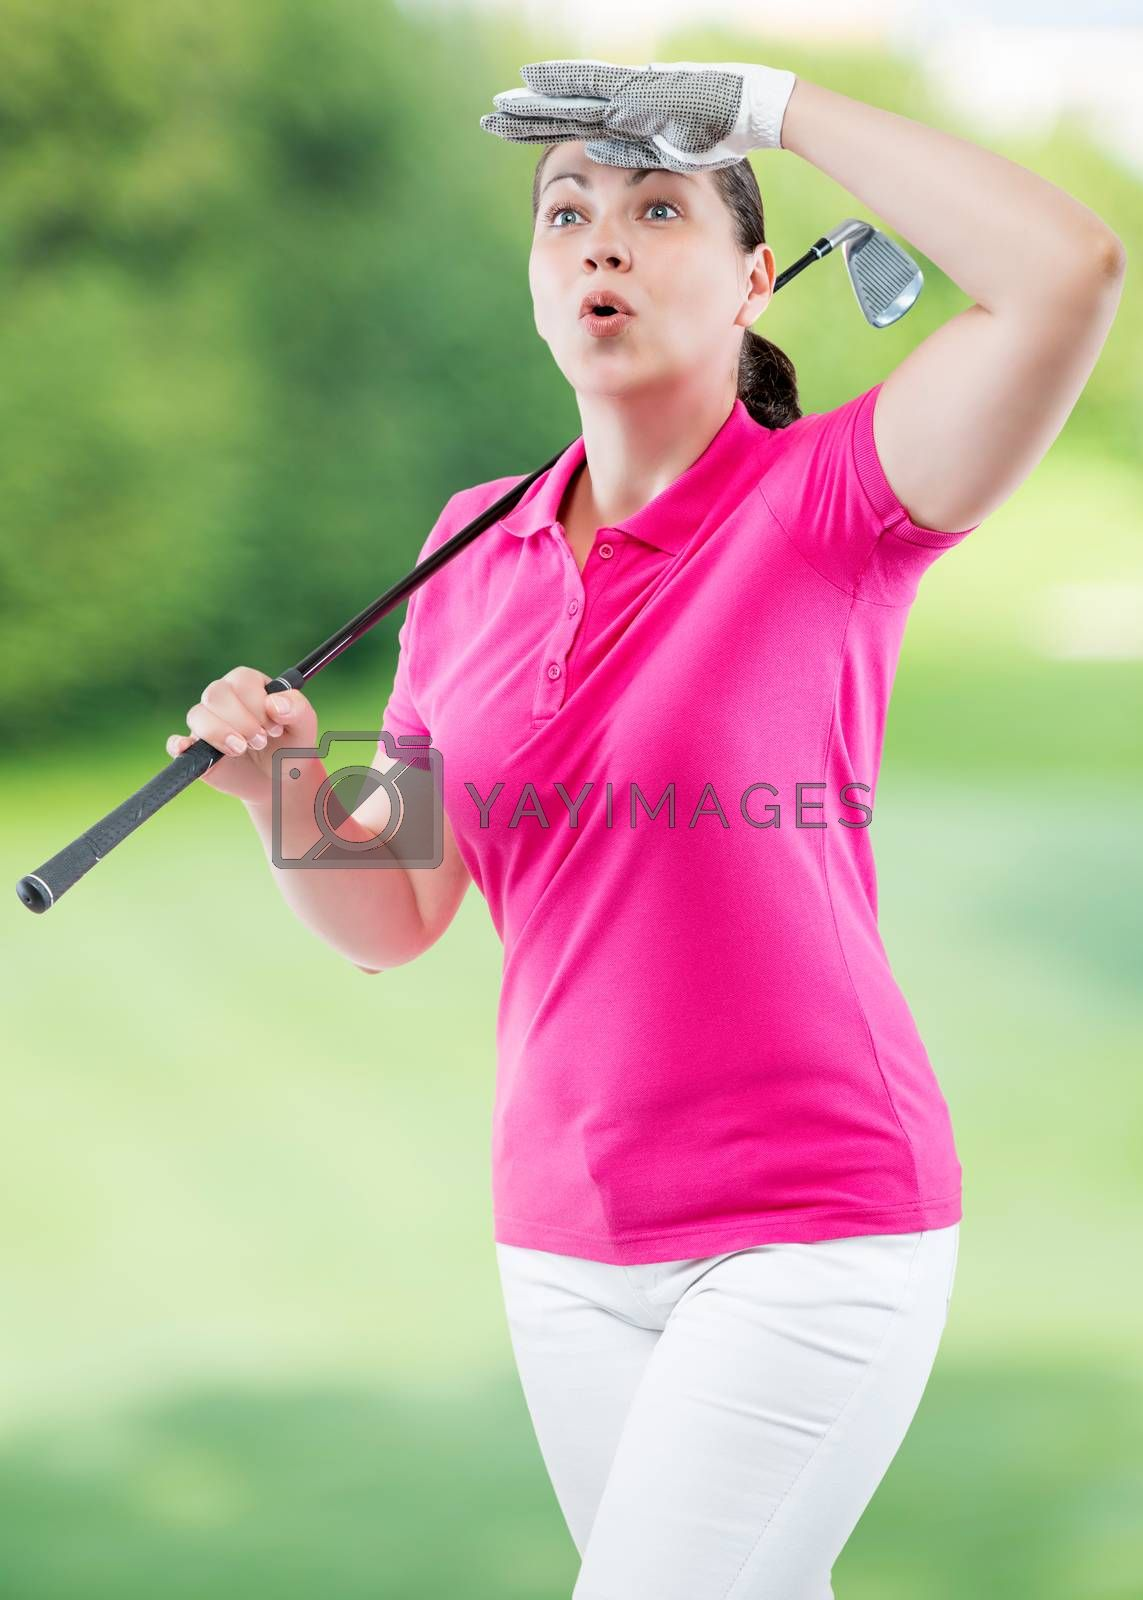 athlete woman watching the ball flight path of golf on a backgro by Labunskiy K.